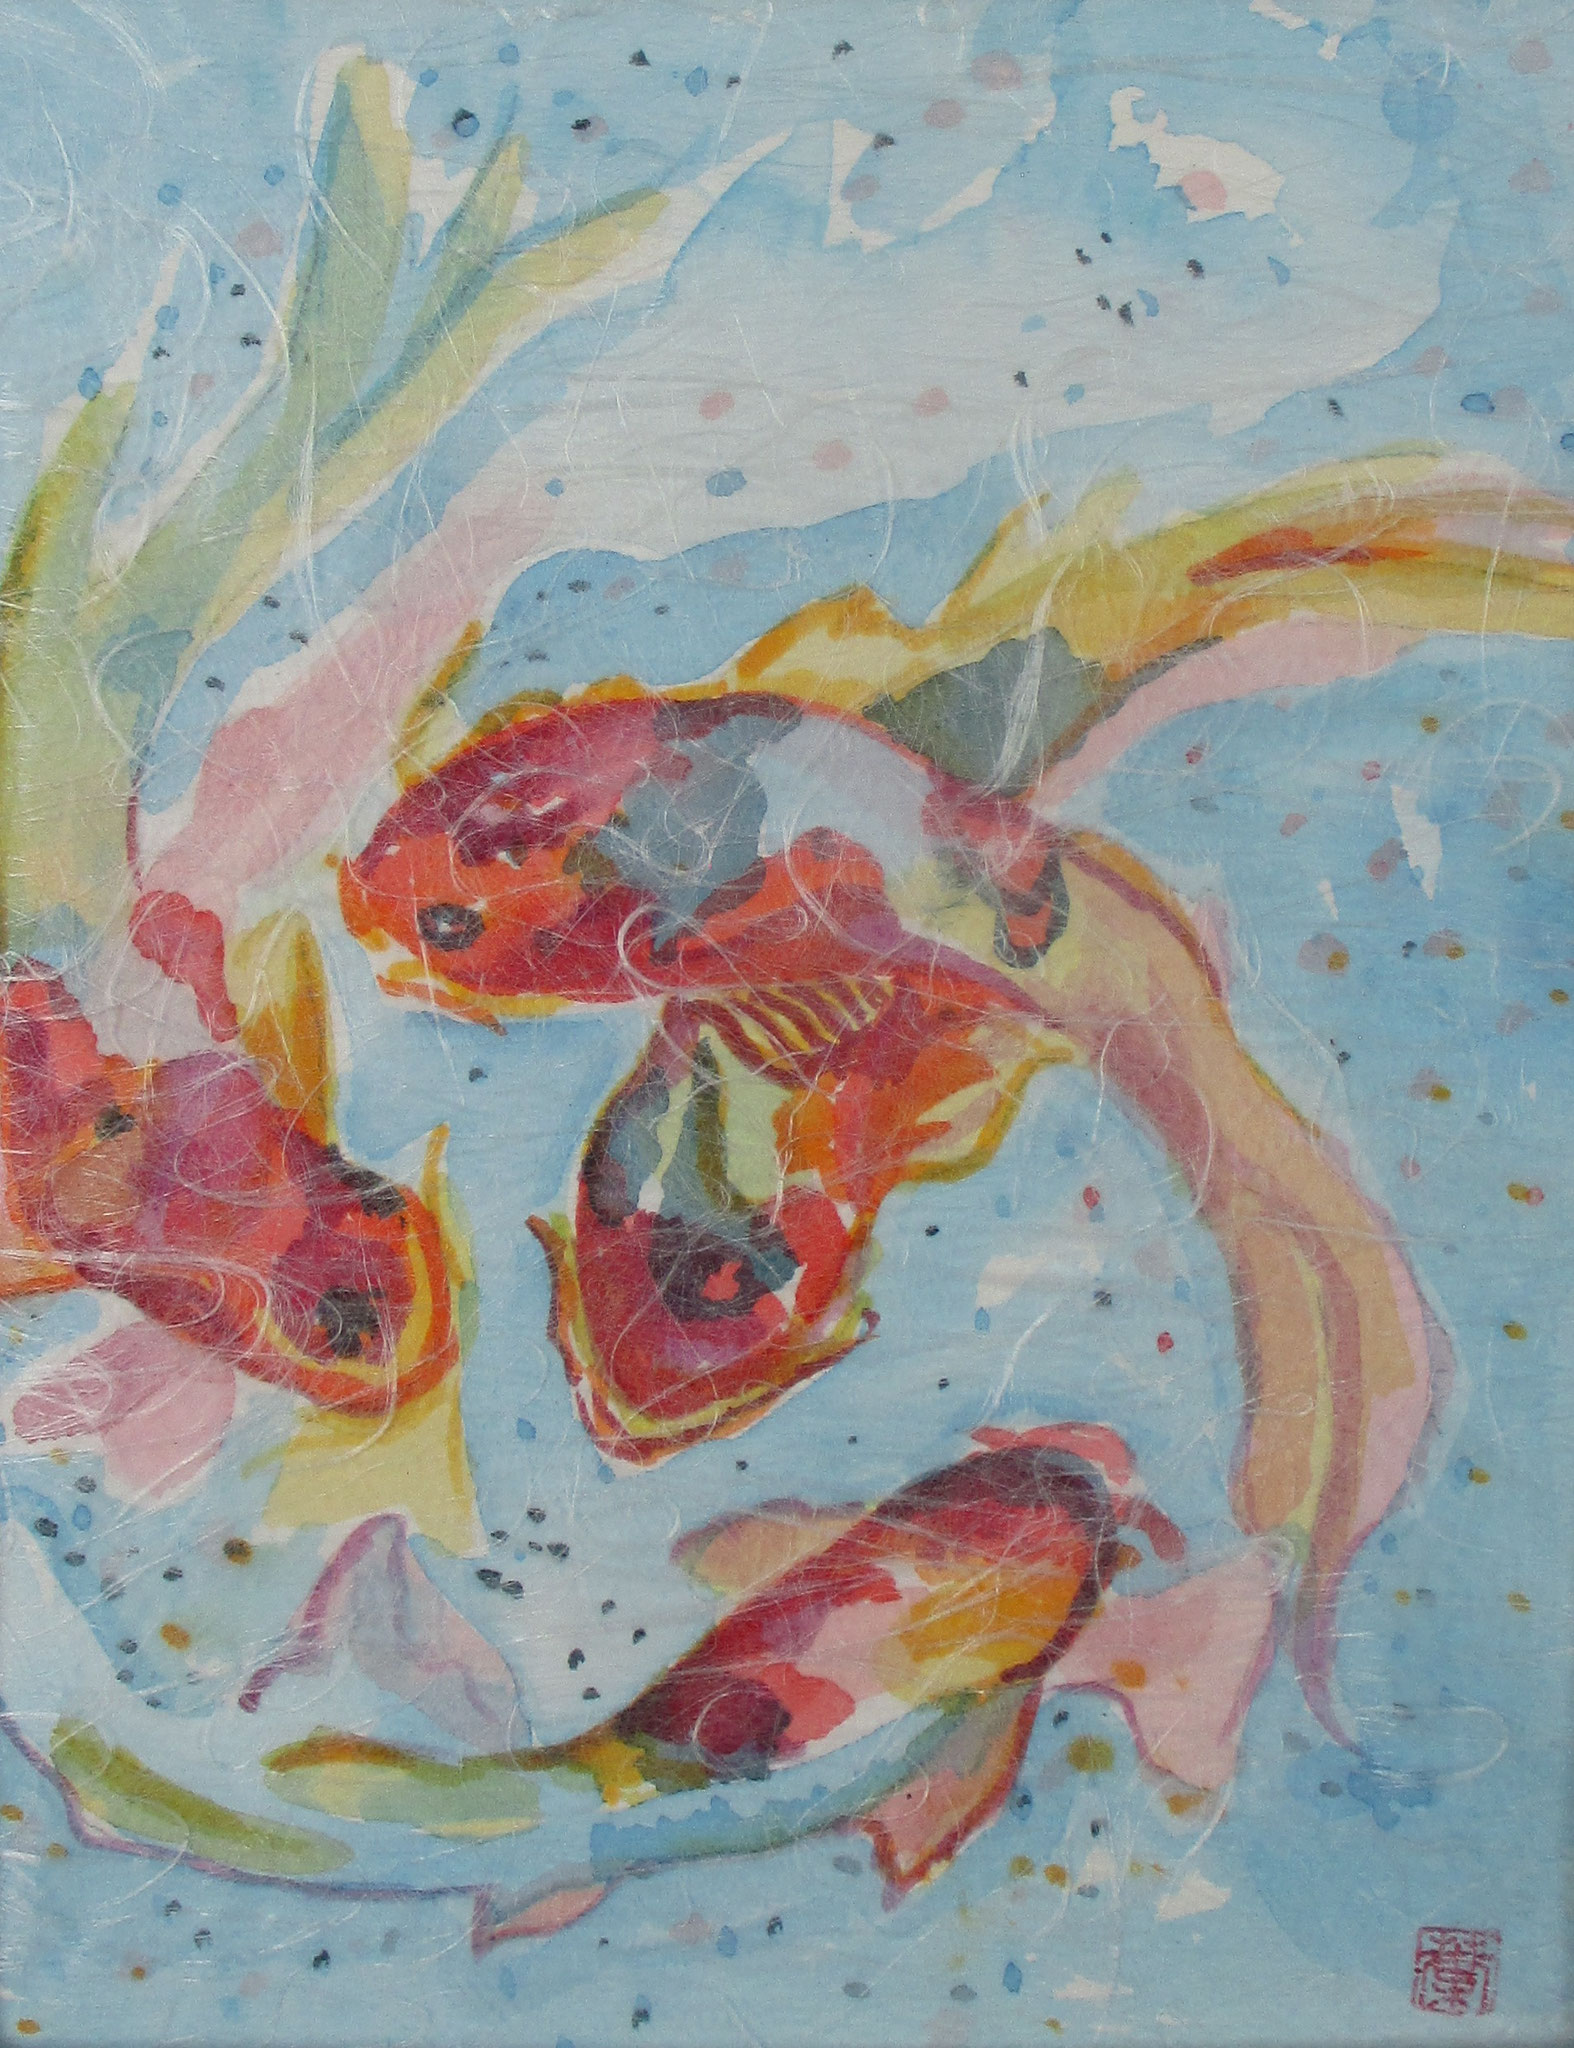 Koi, watercolor, Washi paper overlay, 11 x 14, matted, 2019